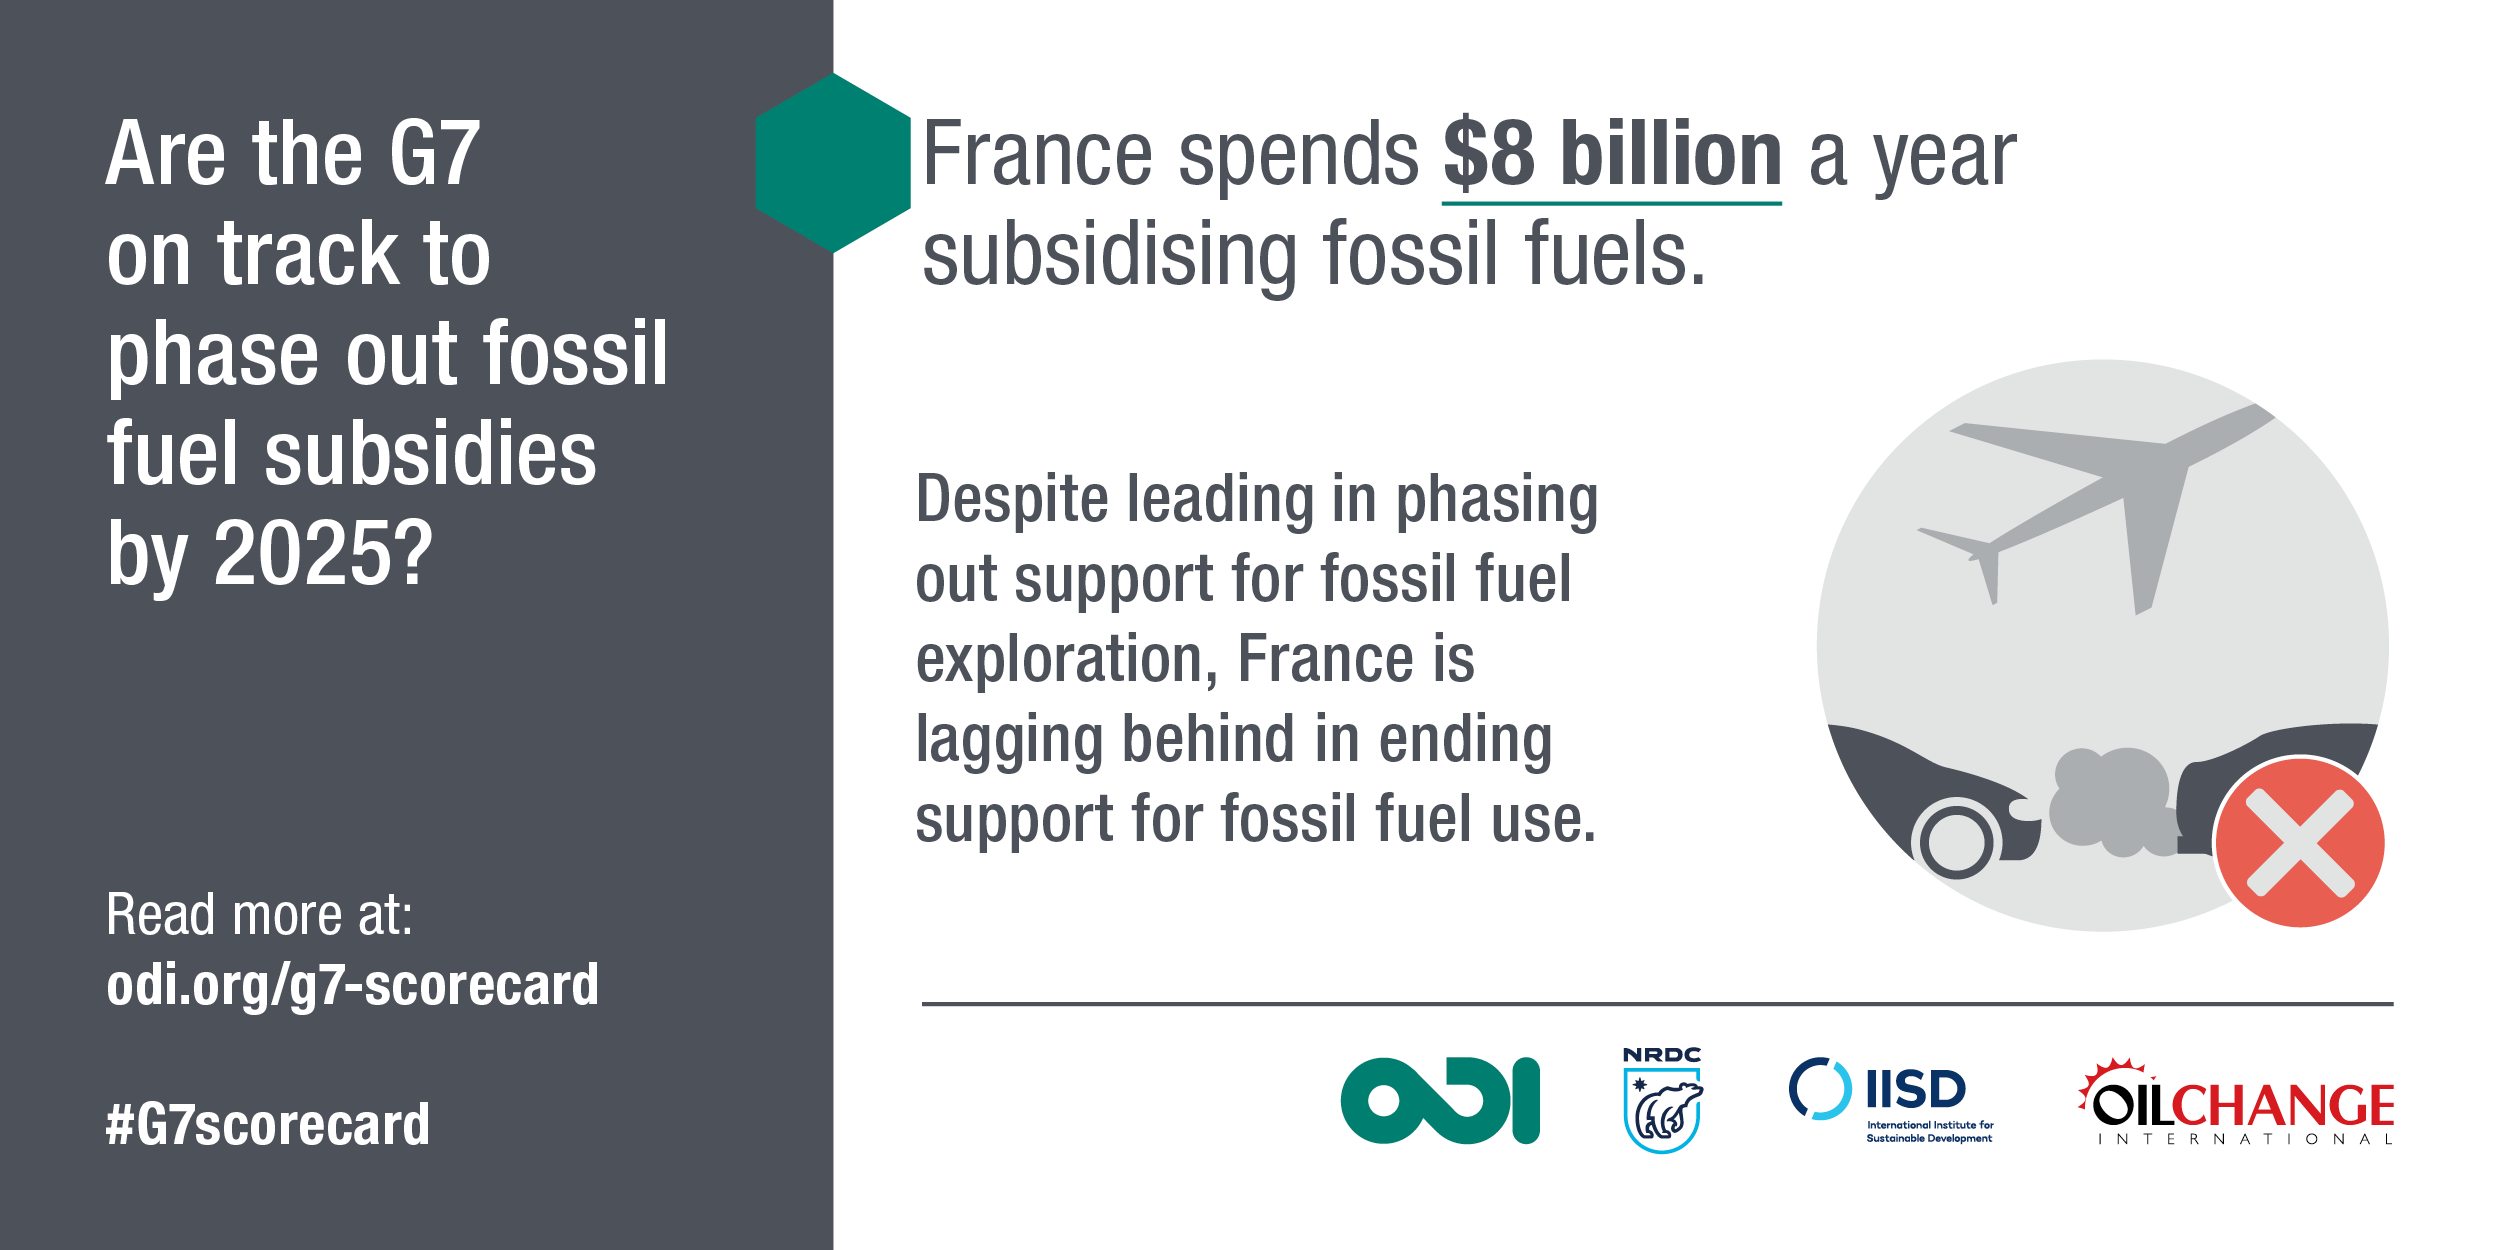 France spends $8 billion a year subsidising fossil fuels. Image: ODI